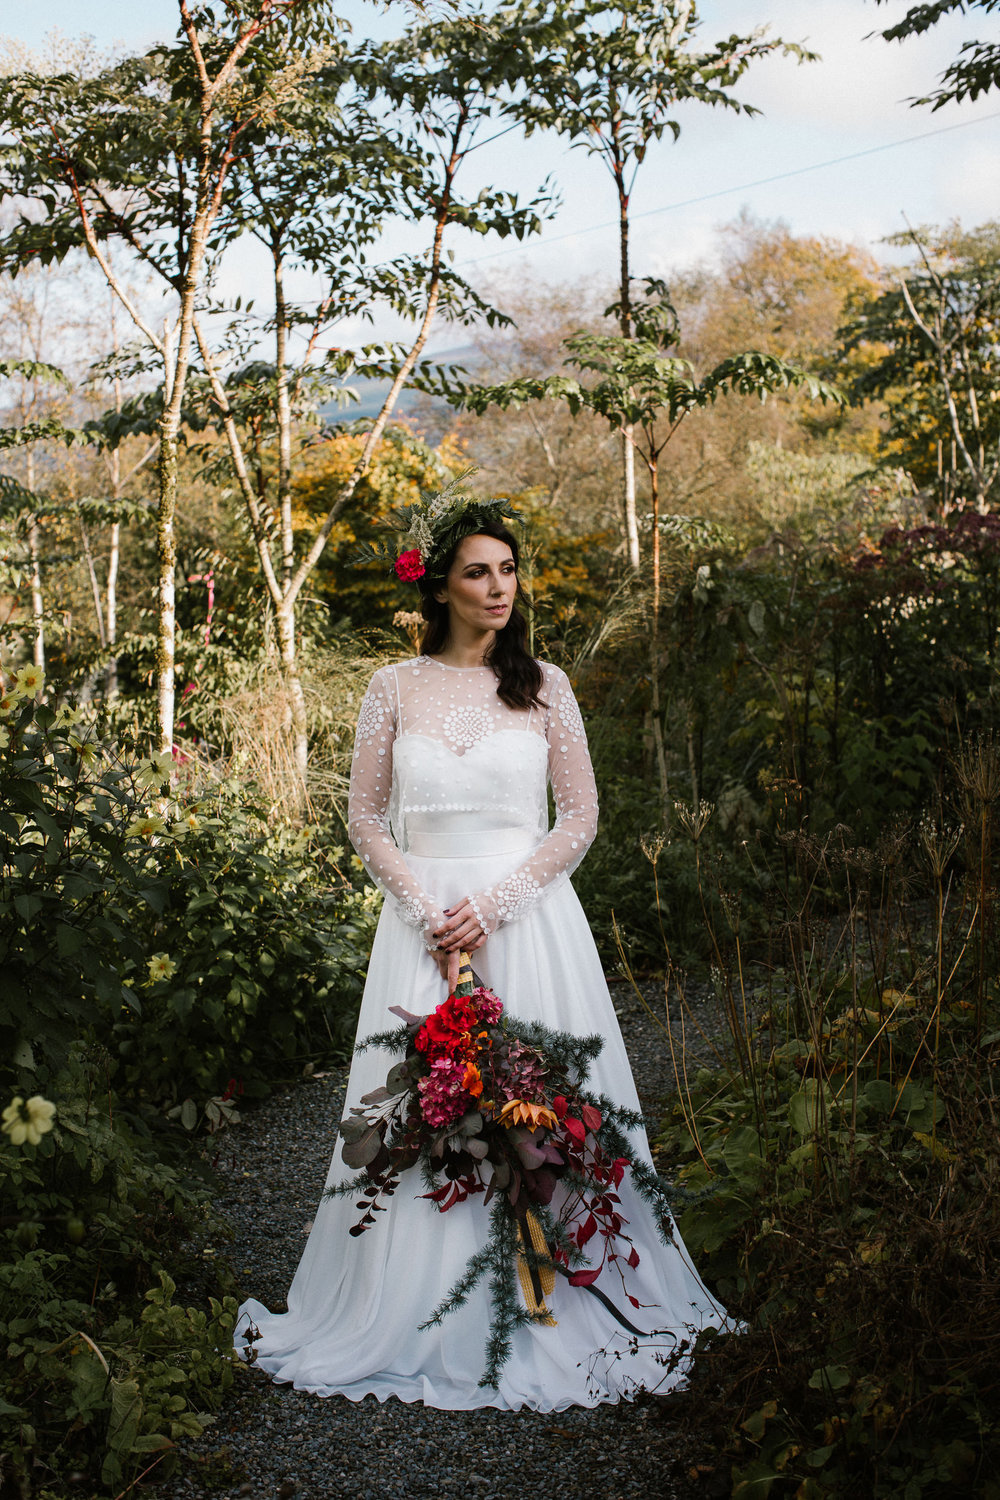 clairebyrnephotography-styled-shoot-huntingbrook-gardens-inspiration-weddings-woods-forest-82.jpg